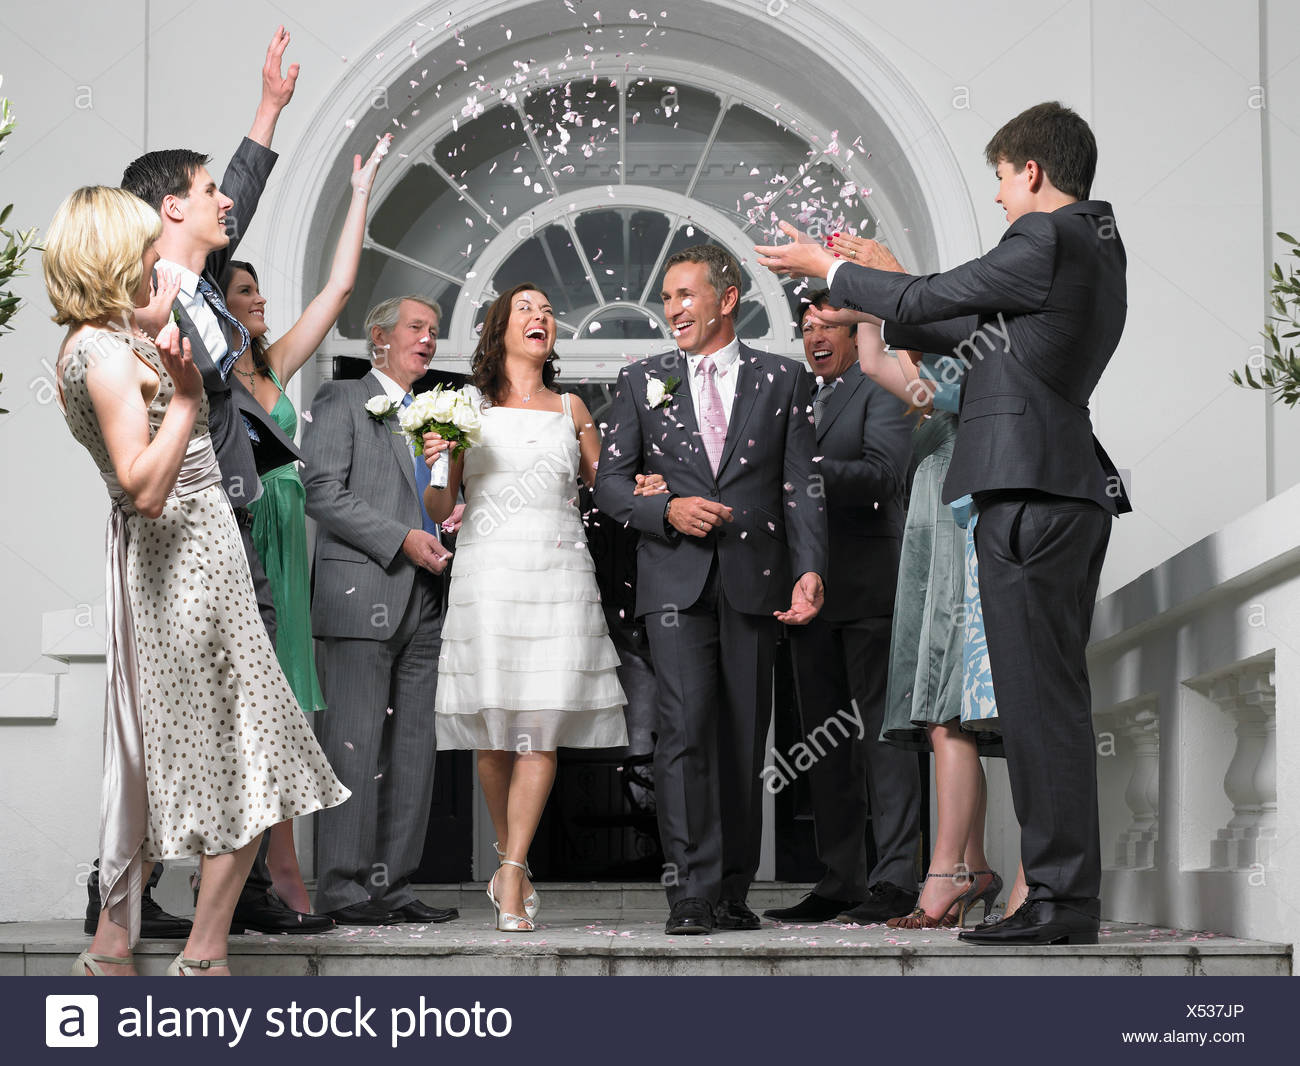 Guests throwing confetti over bride and groom - Stock Image